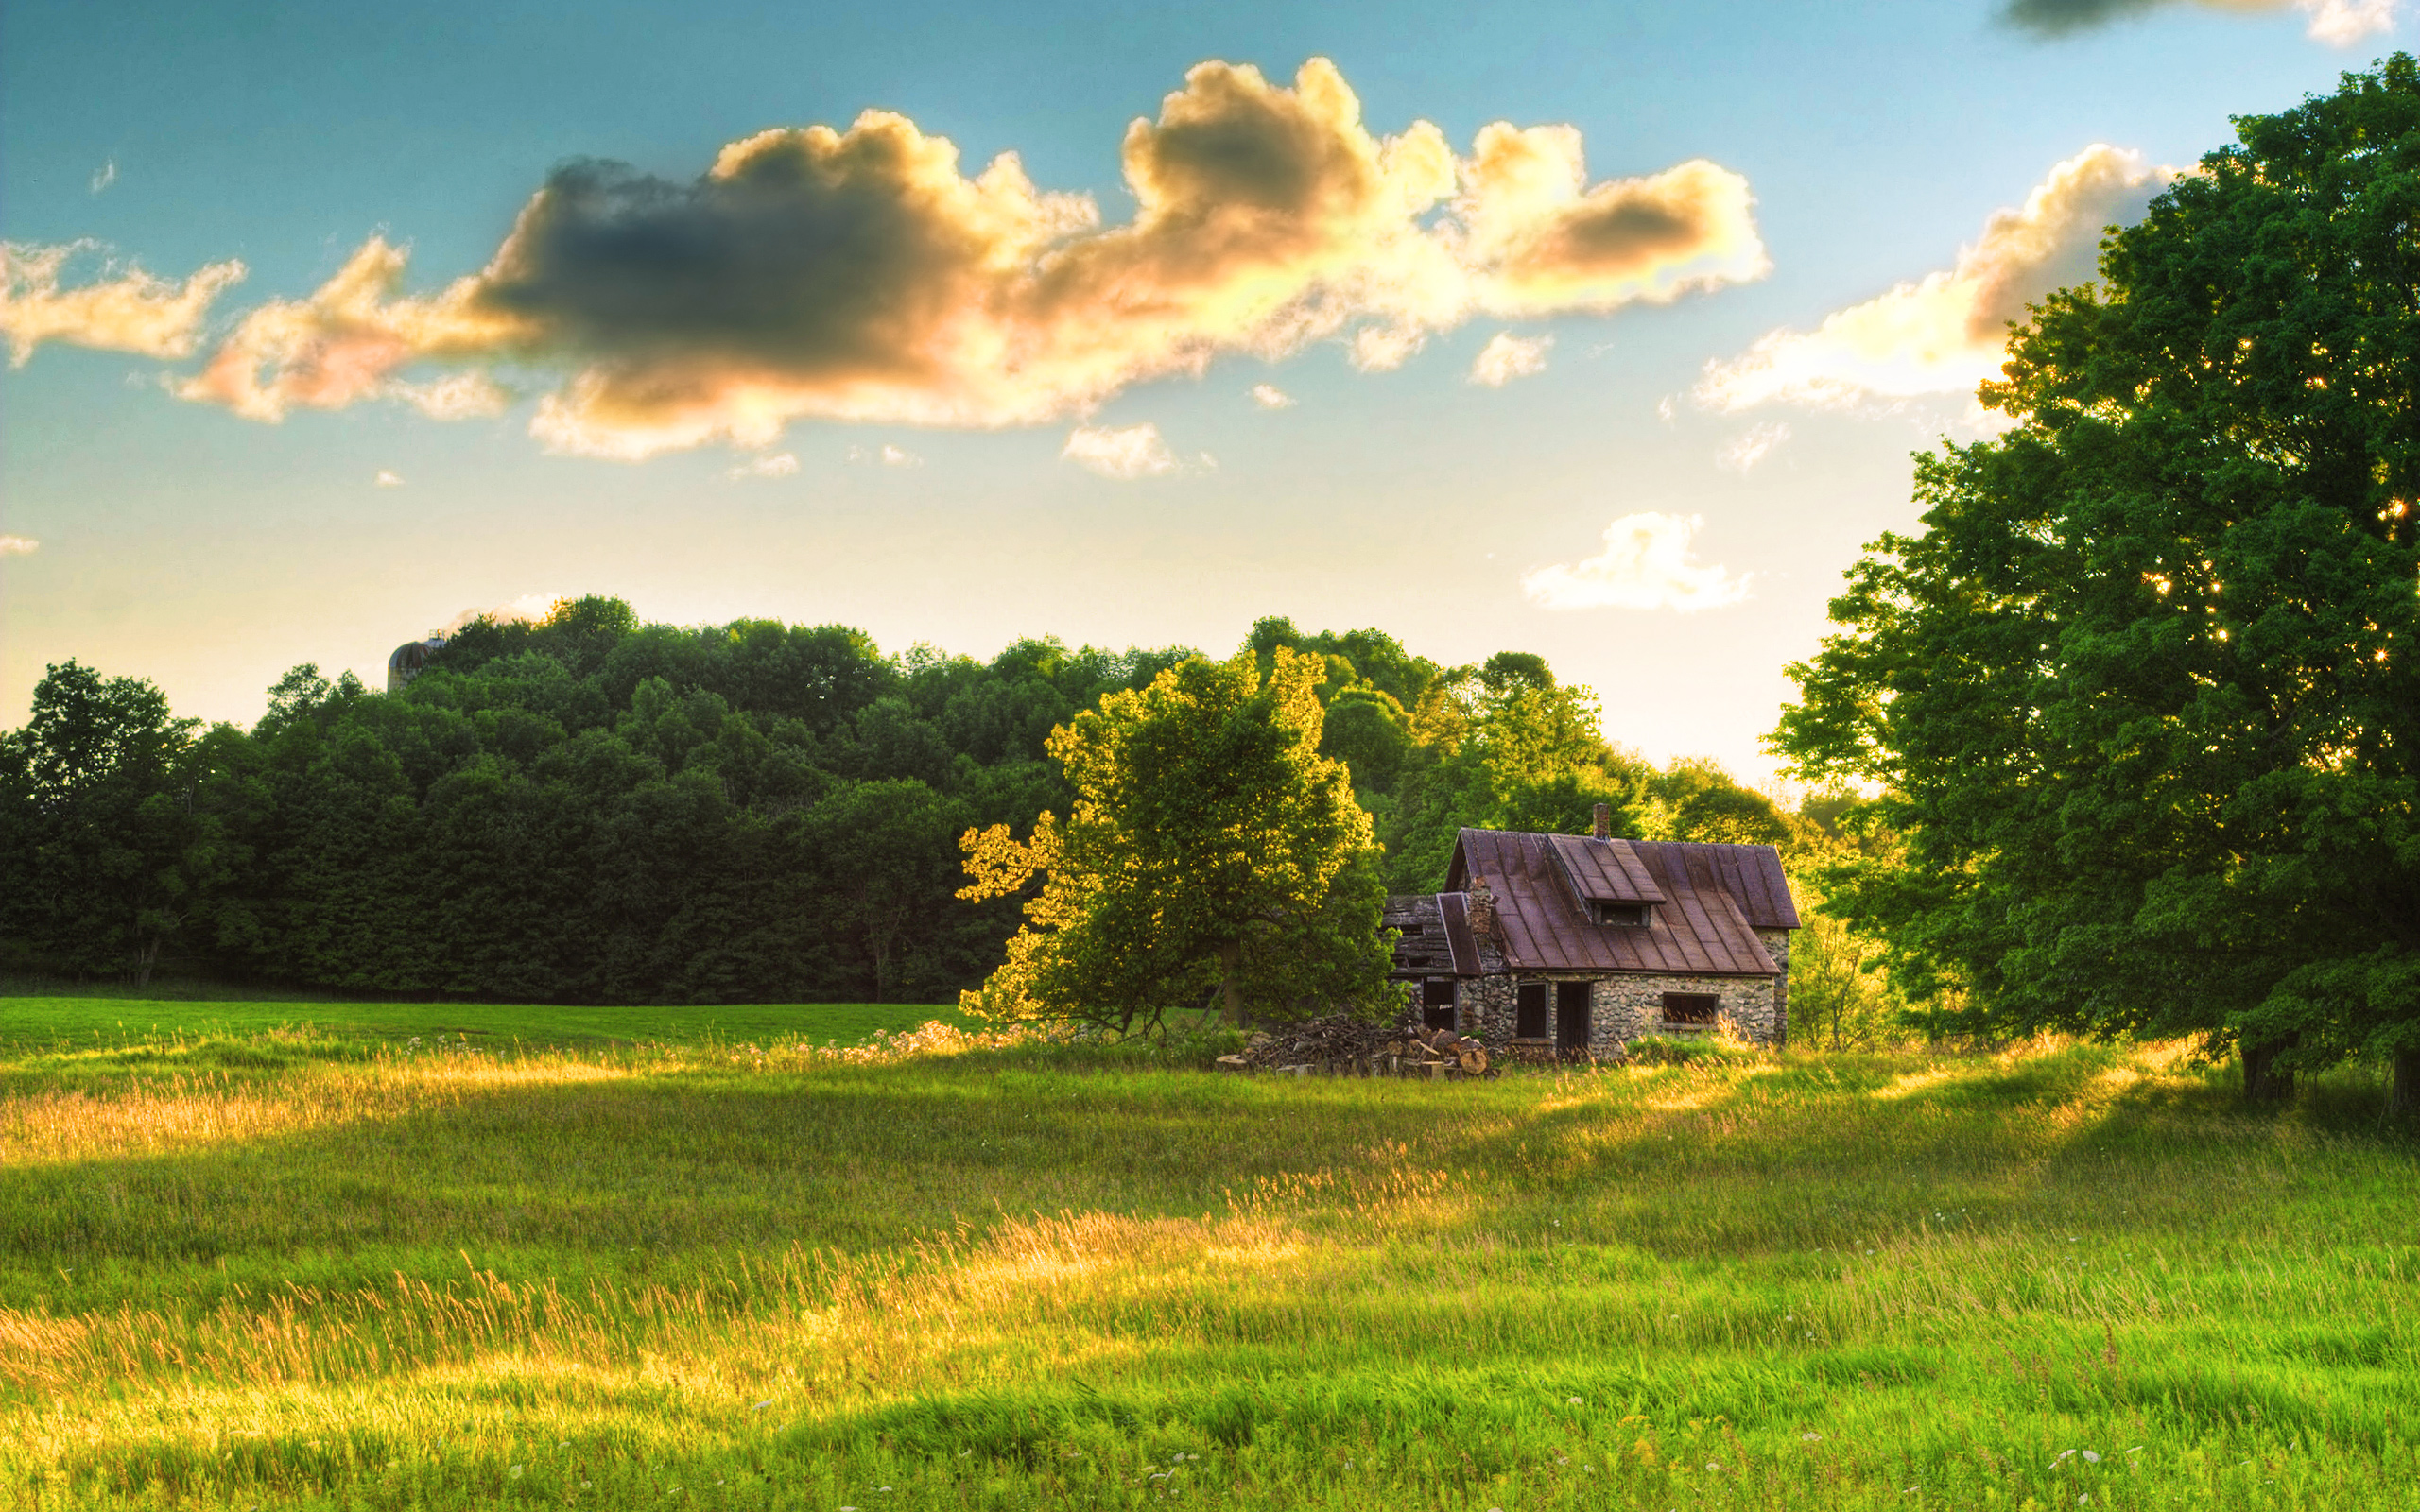 Old Stone Barn at Dusk by tch